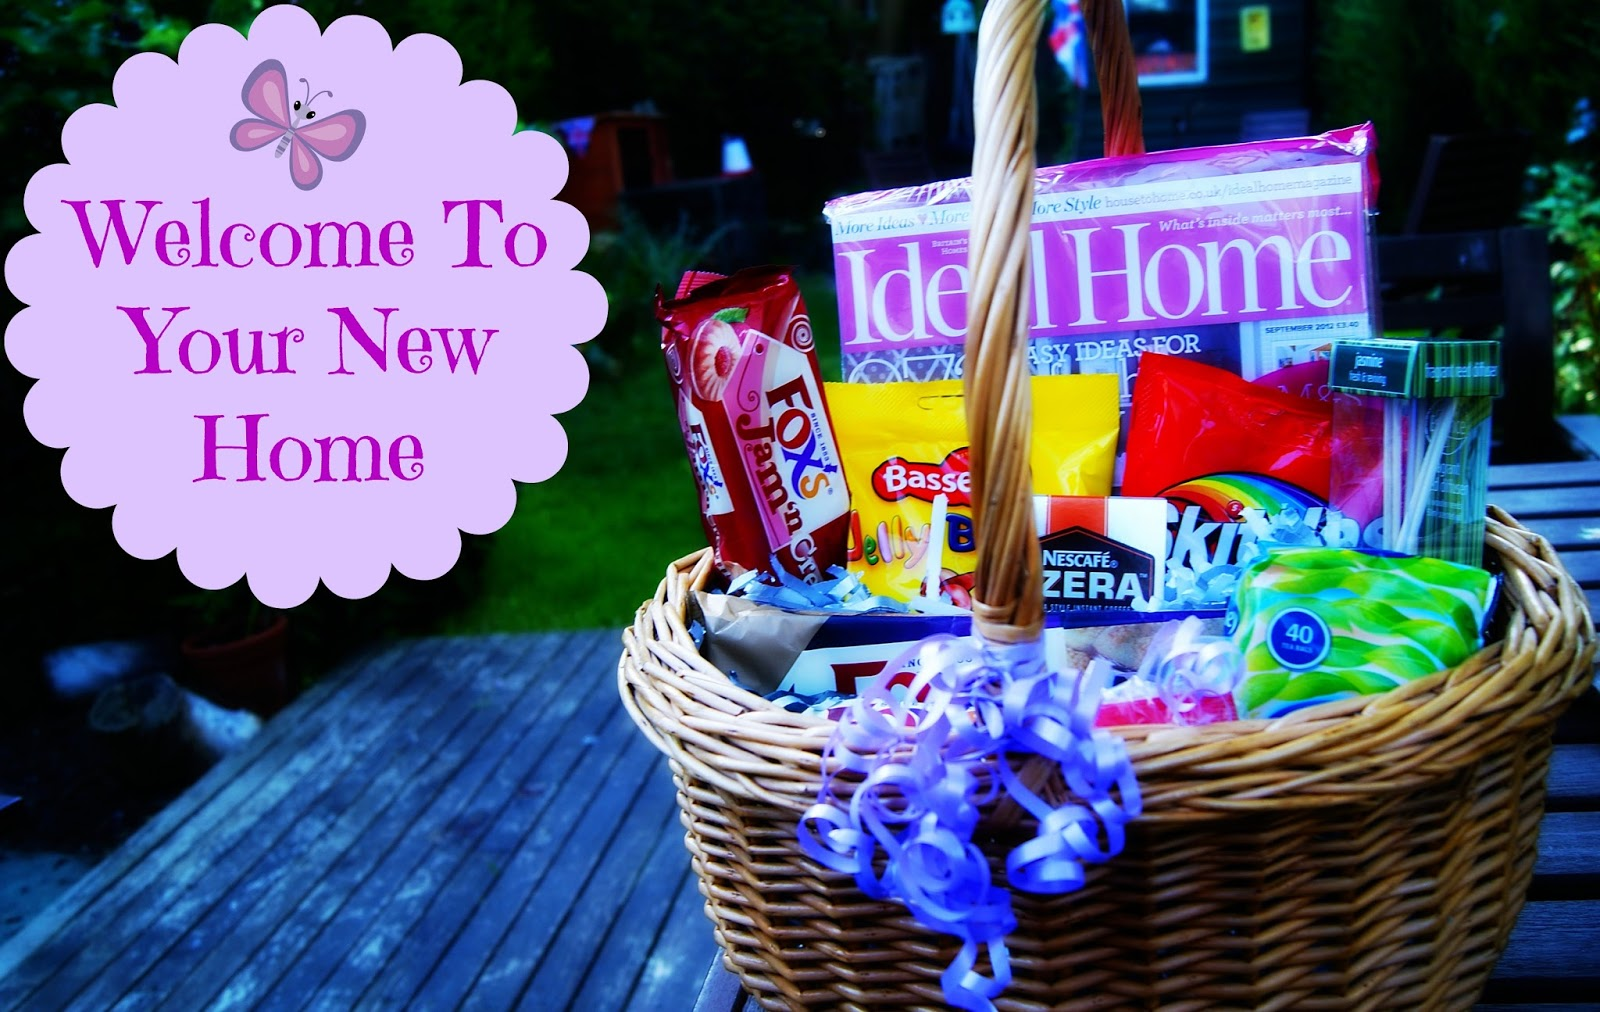 Welcome To New Home Gifts Part - 18: Thrifty Gift Basket Idea - Welcome To Your New Home